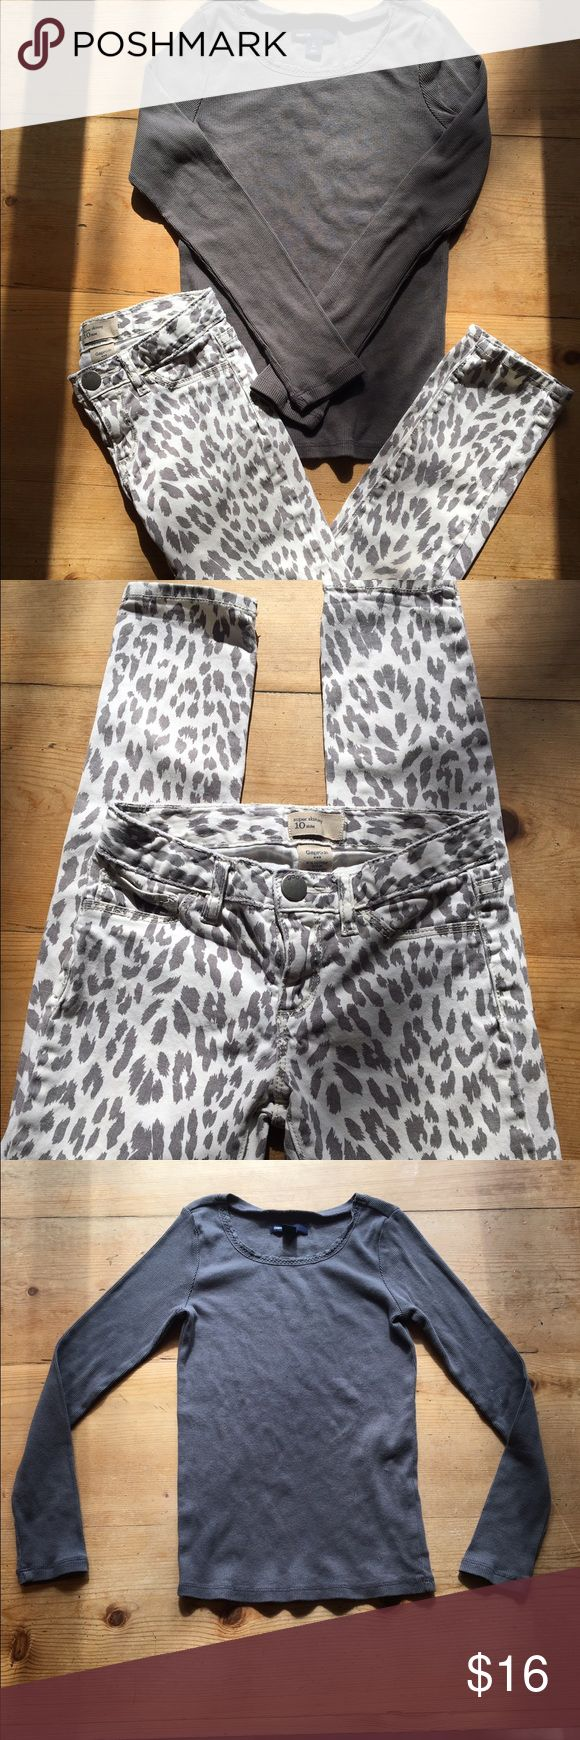 Gap kids outfit size 10 Long sleeve ribbed t-shirt and grey leopard print pants from the Gap.  Pants Size 10Slim top size 10 GAP Matching Sets